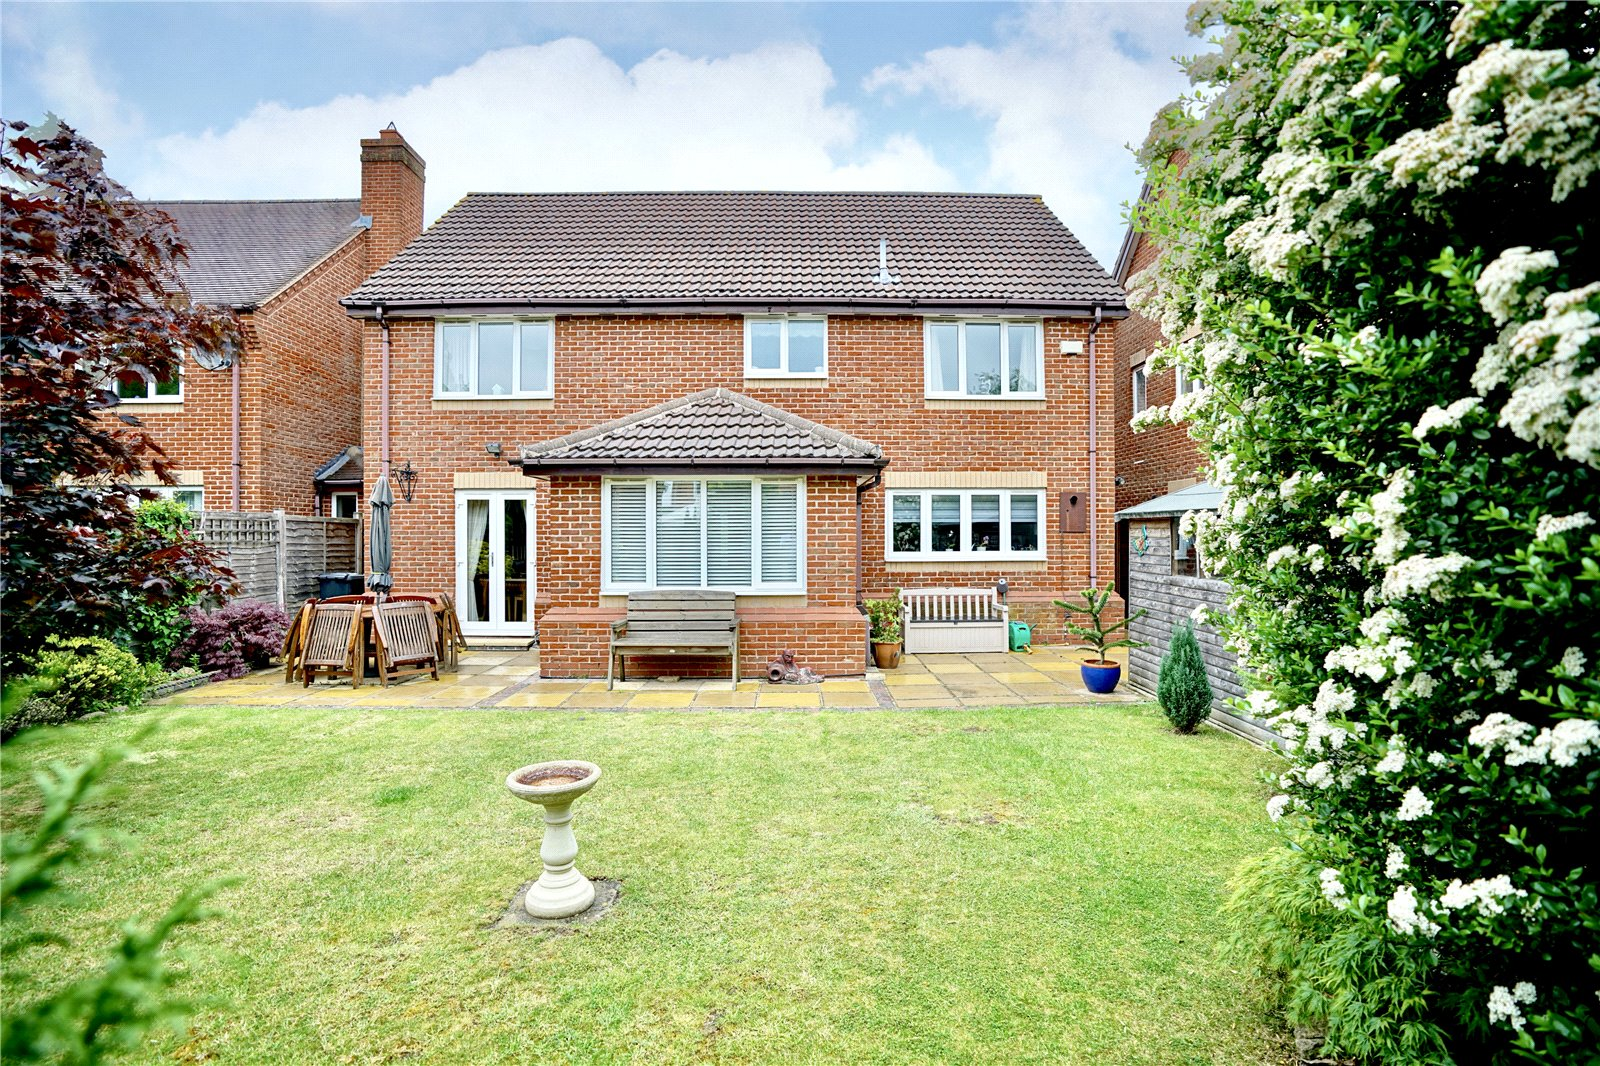 4 bed house for sale in Great Gransden  - Property Image 15